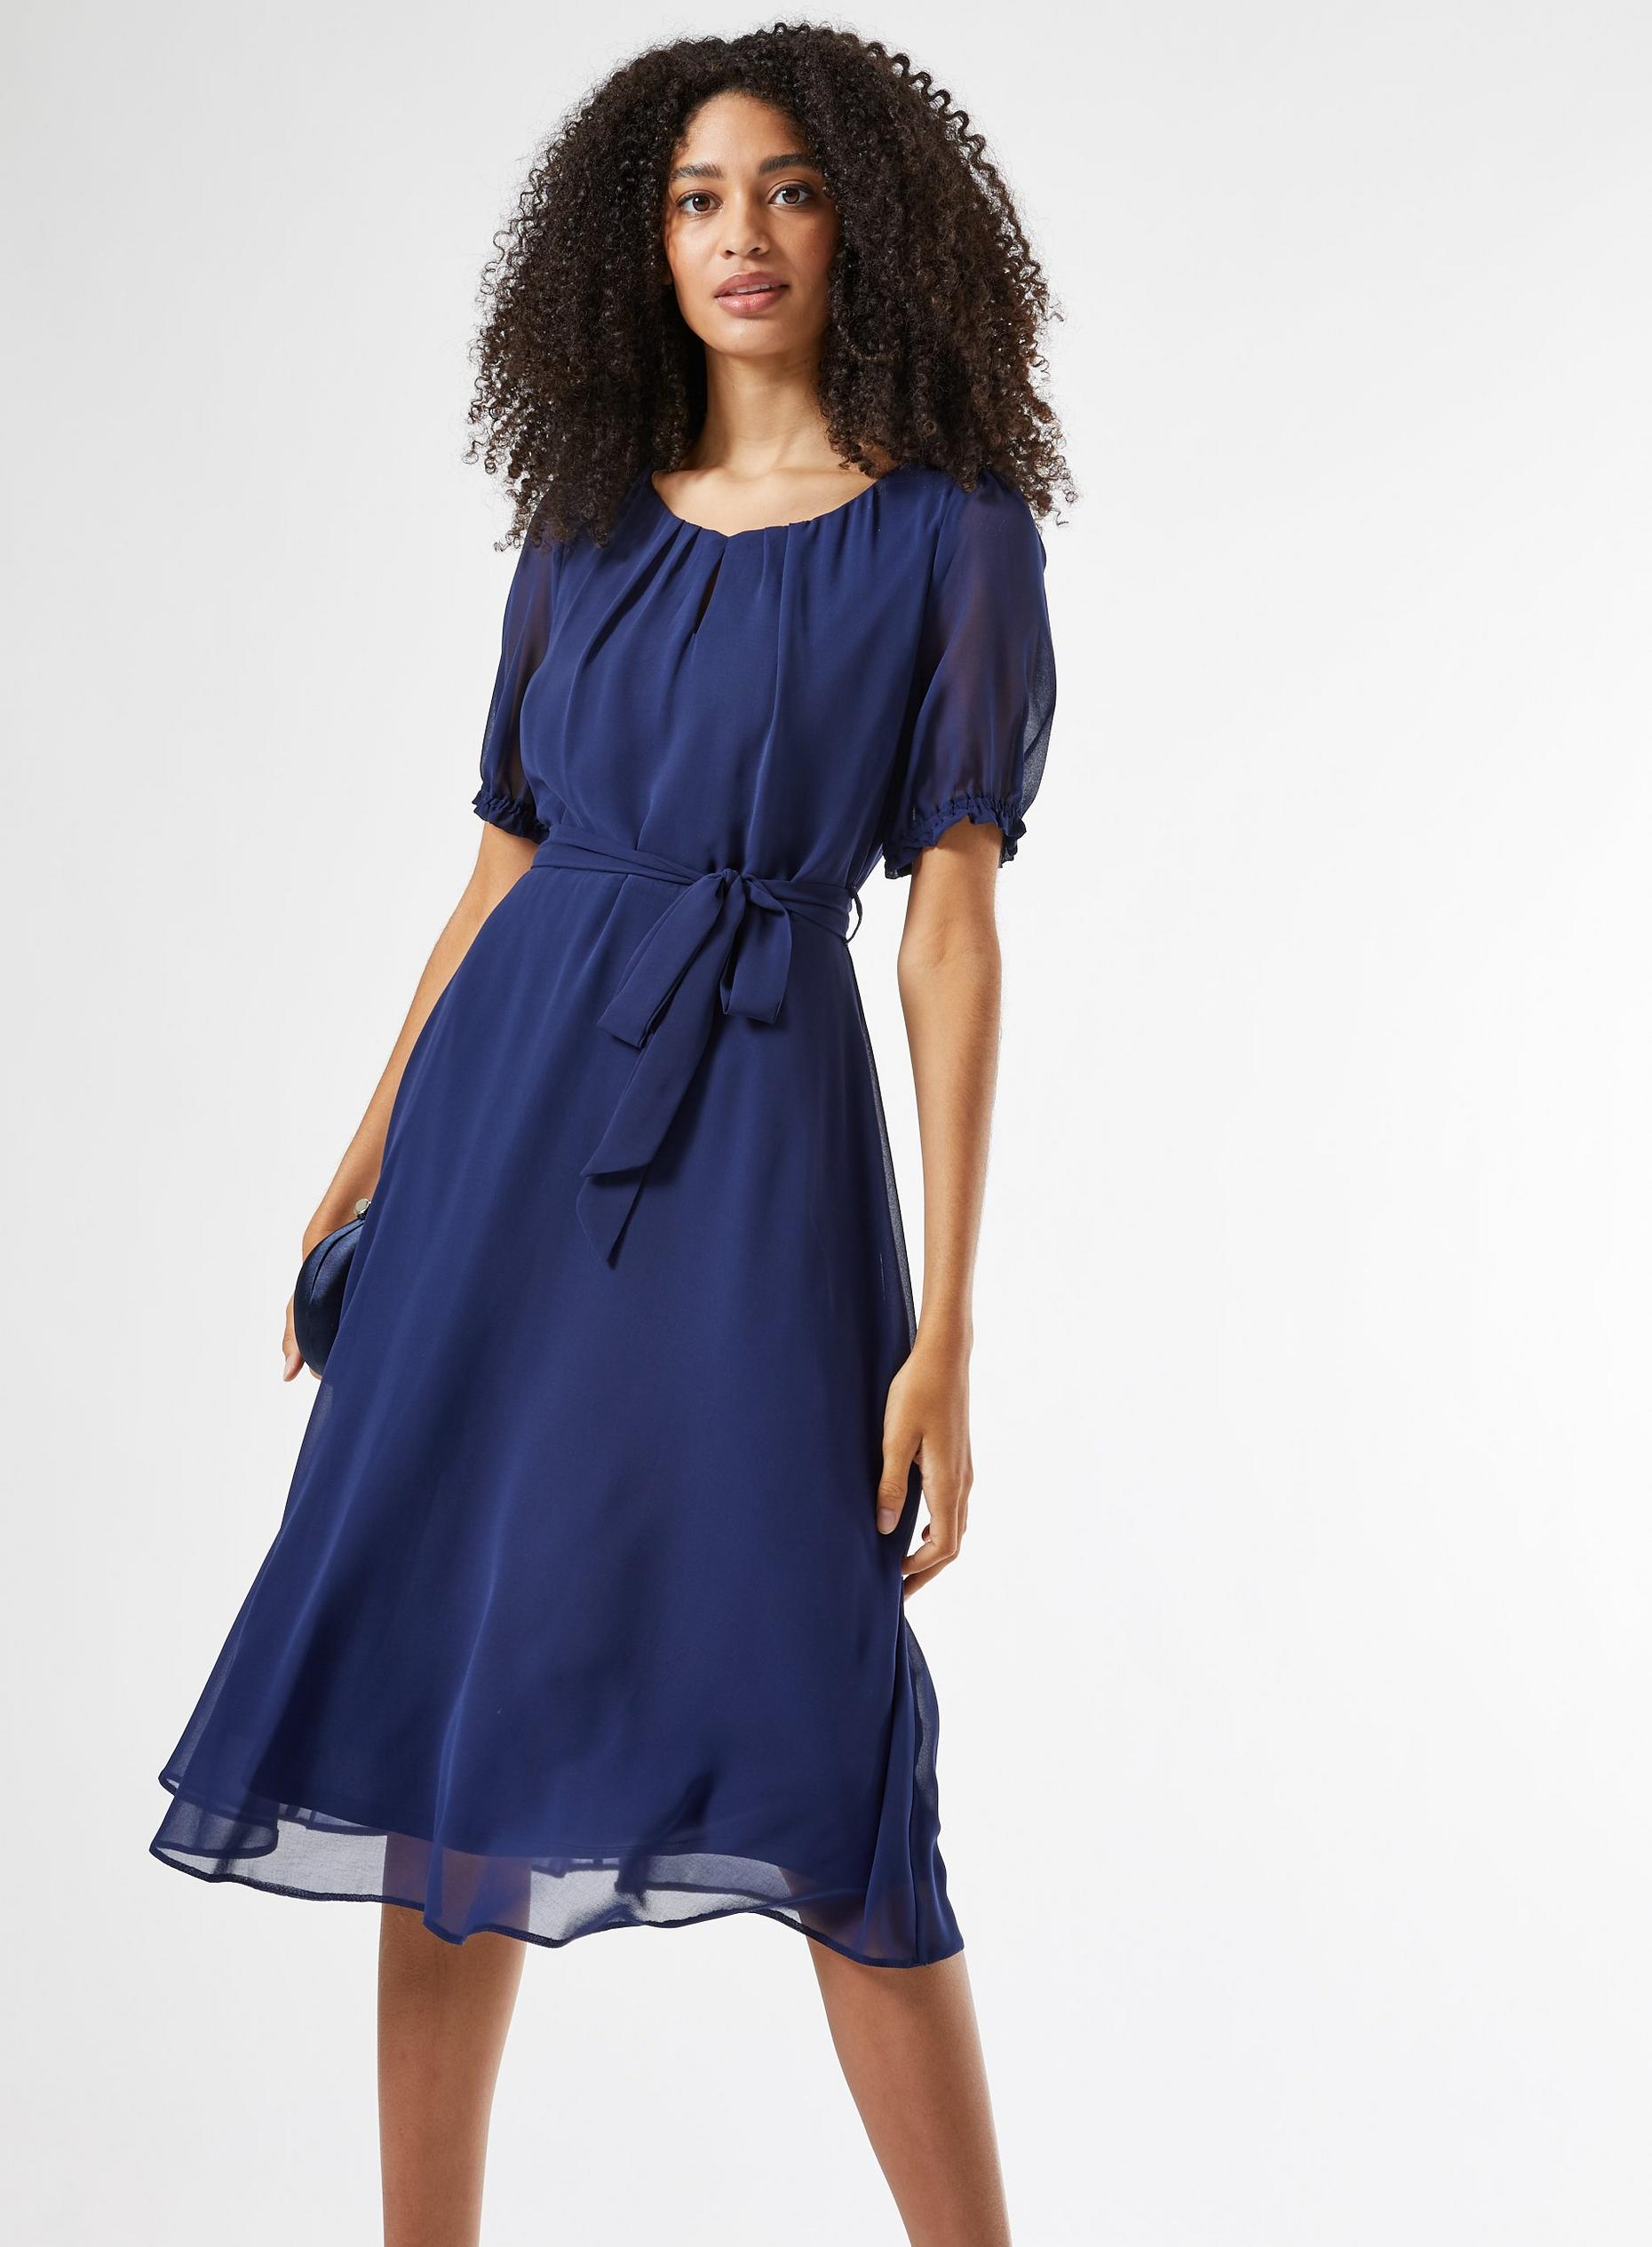 Navy Key Hole Midi Dress